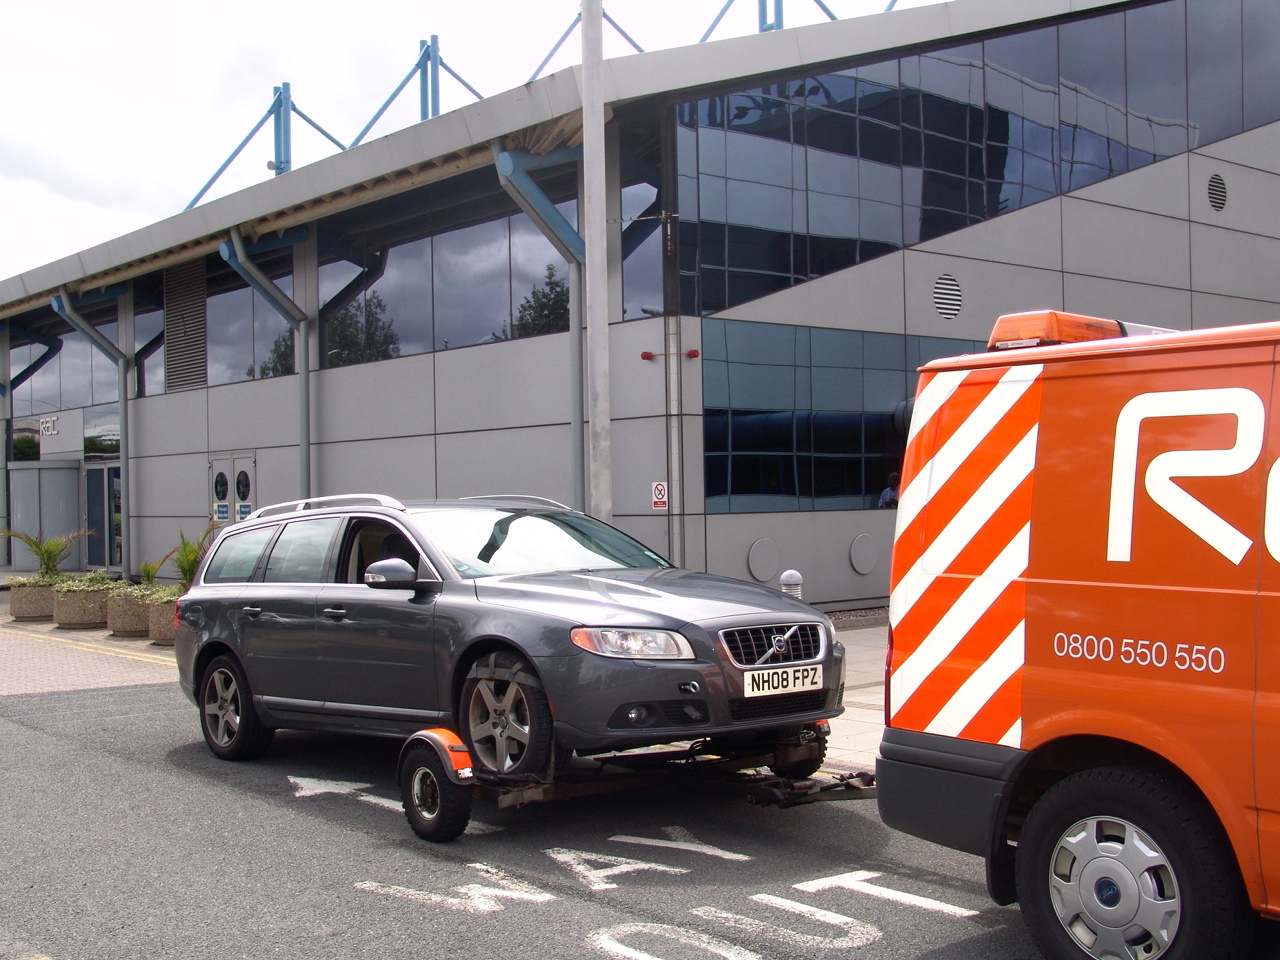 The 'Rapid Deployable Trailer' has transformed the way in which RAC patrols work, enabling vehicles to be recovered by a patrol if they can't be fixed at the roadside.